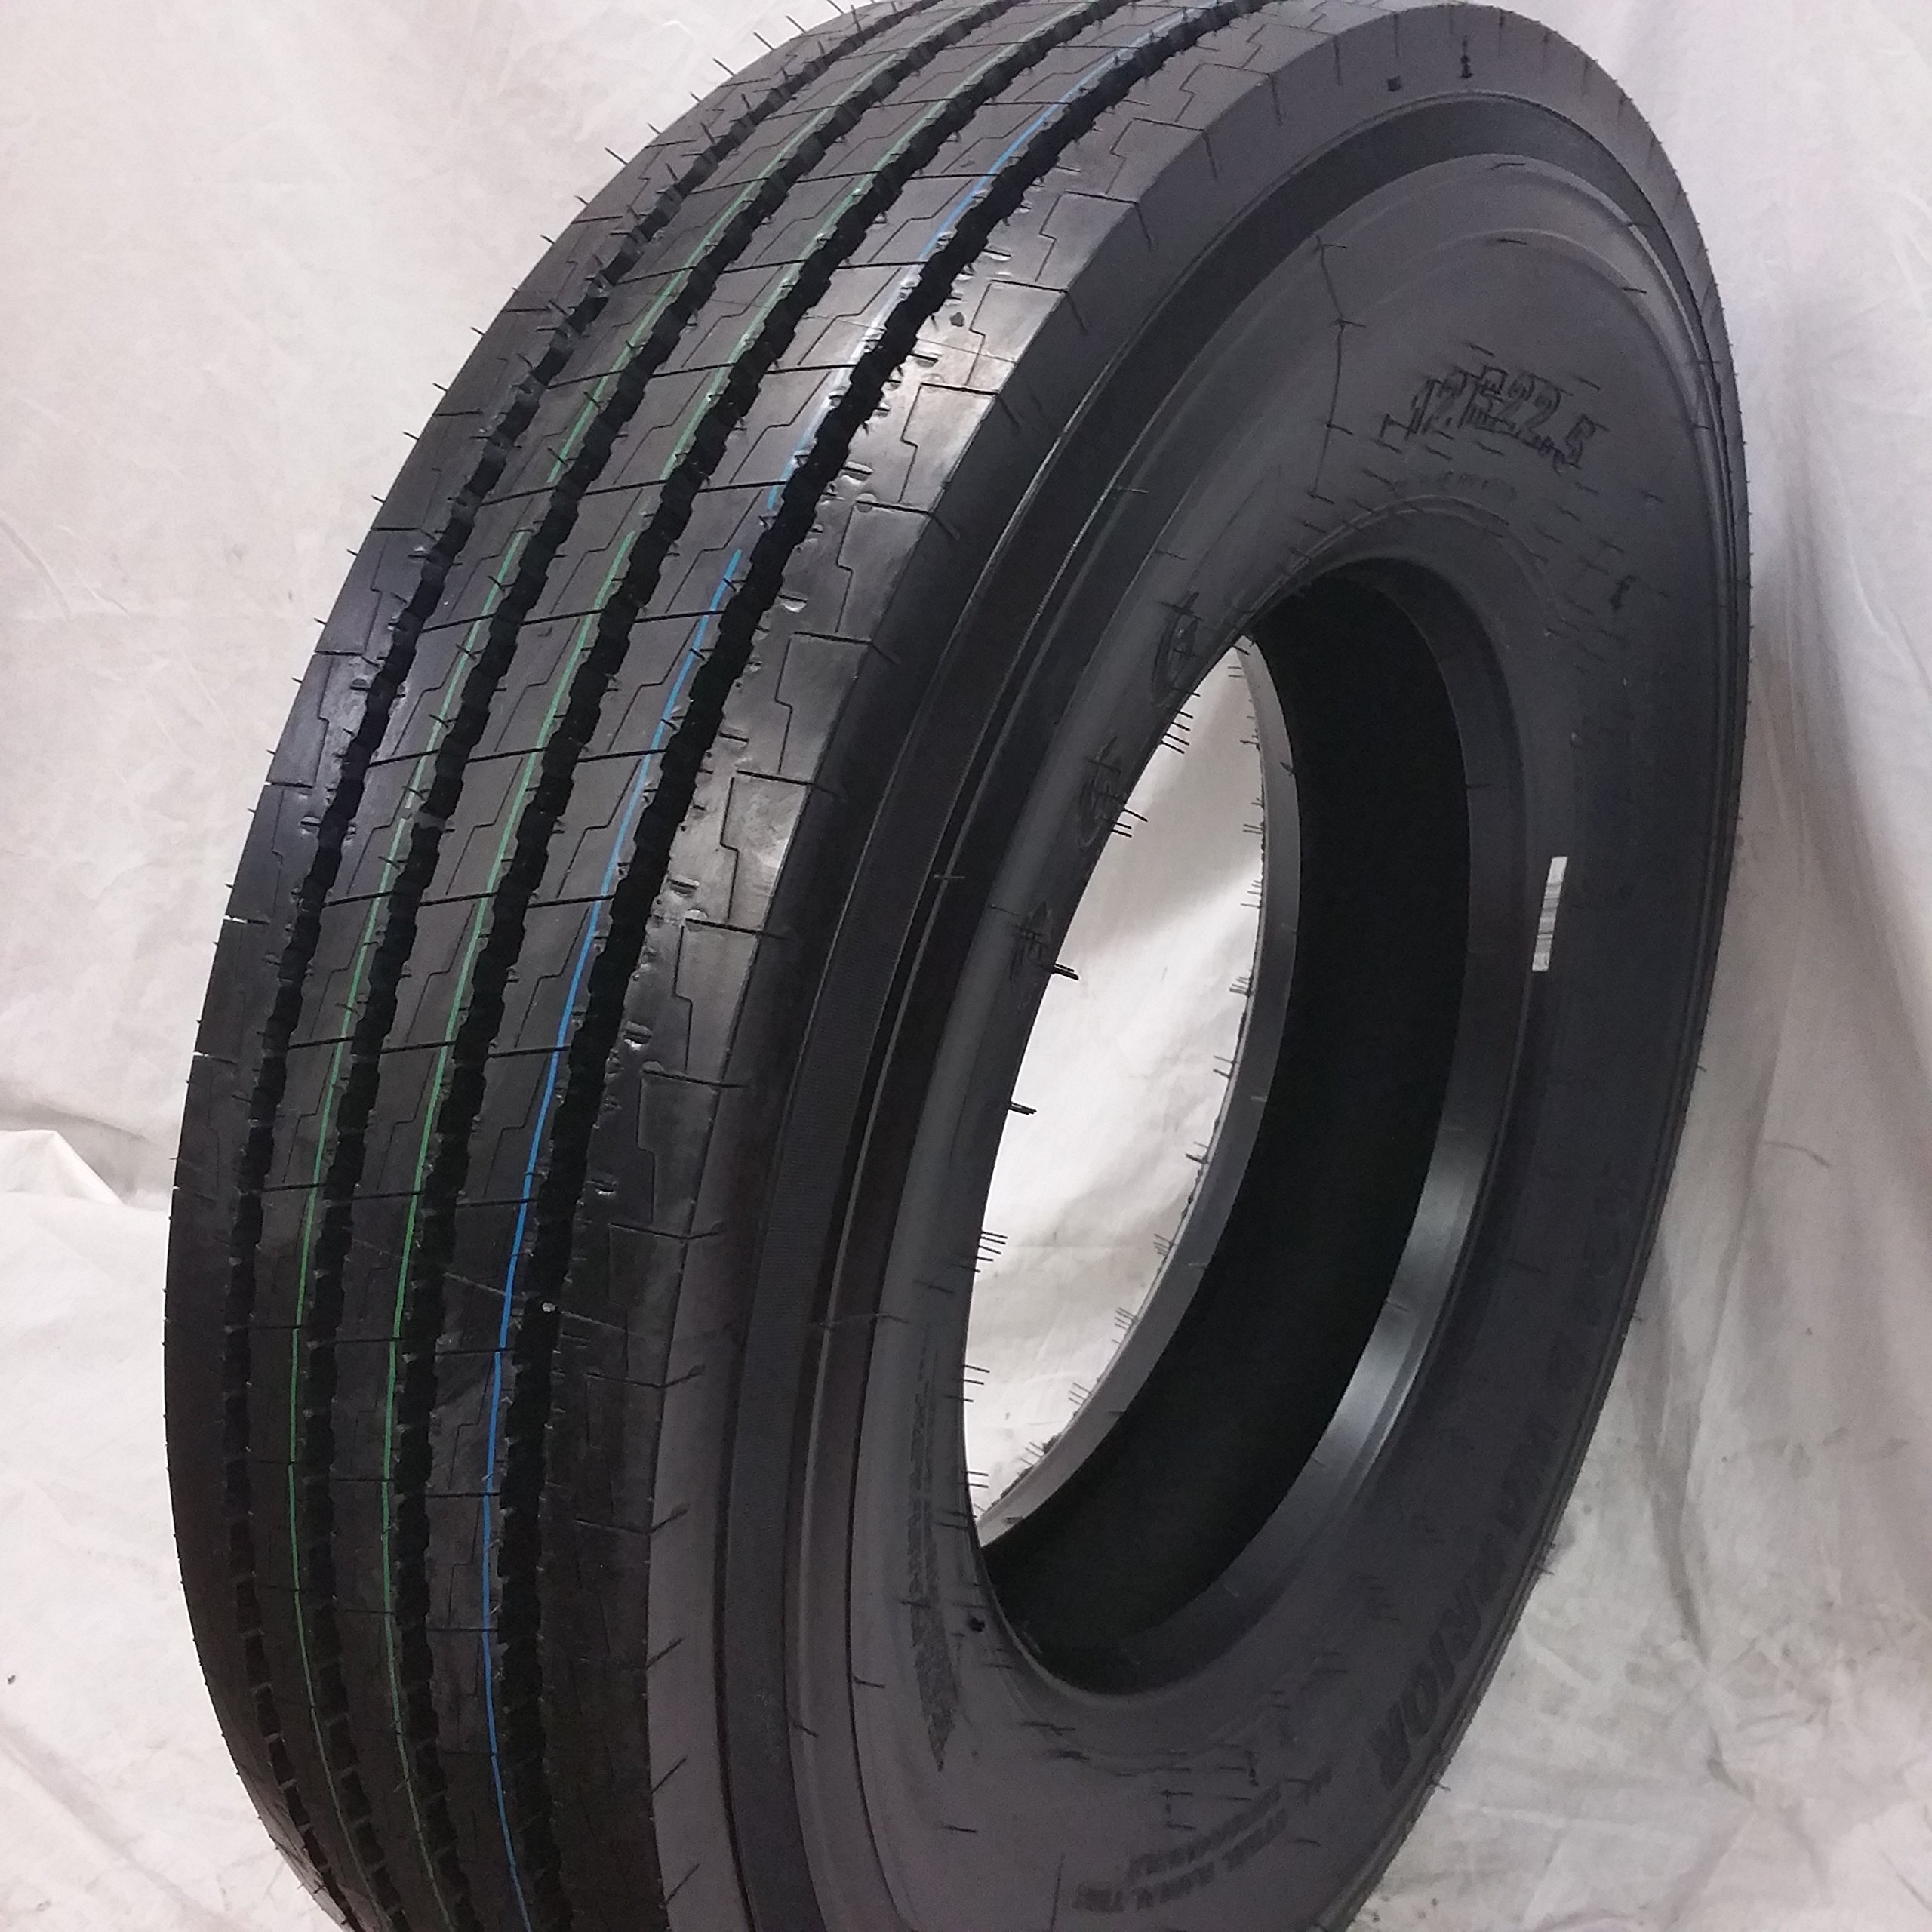 11R24.5 ROAD WARRIOR RADIAL (2- STEER TIRES) 16 PLY RATING by ROAD WARRIOR (Image #1)